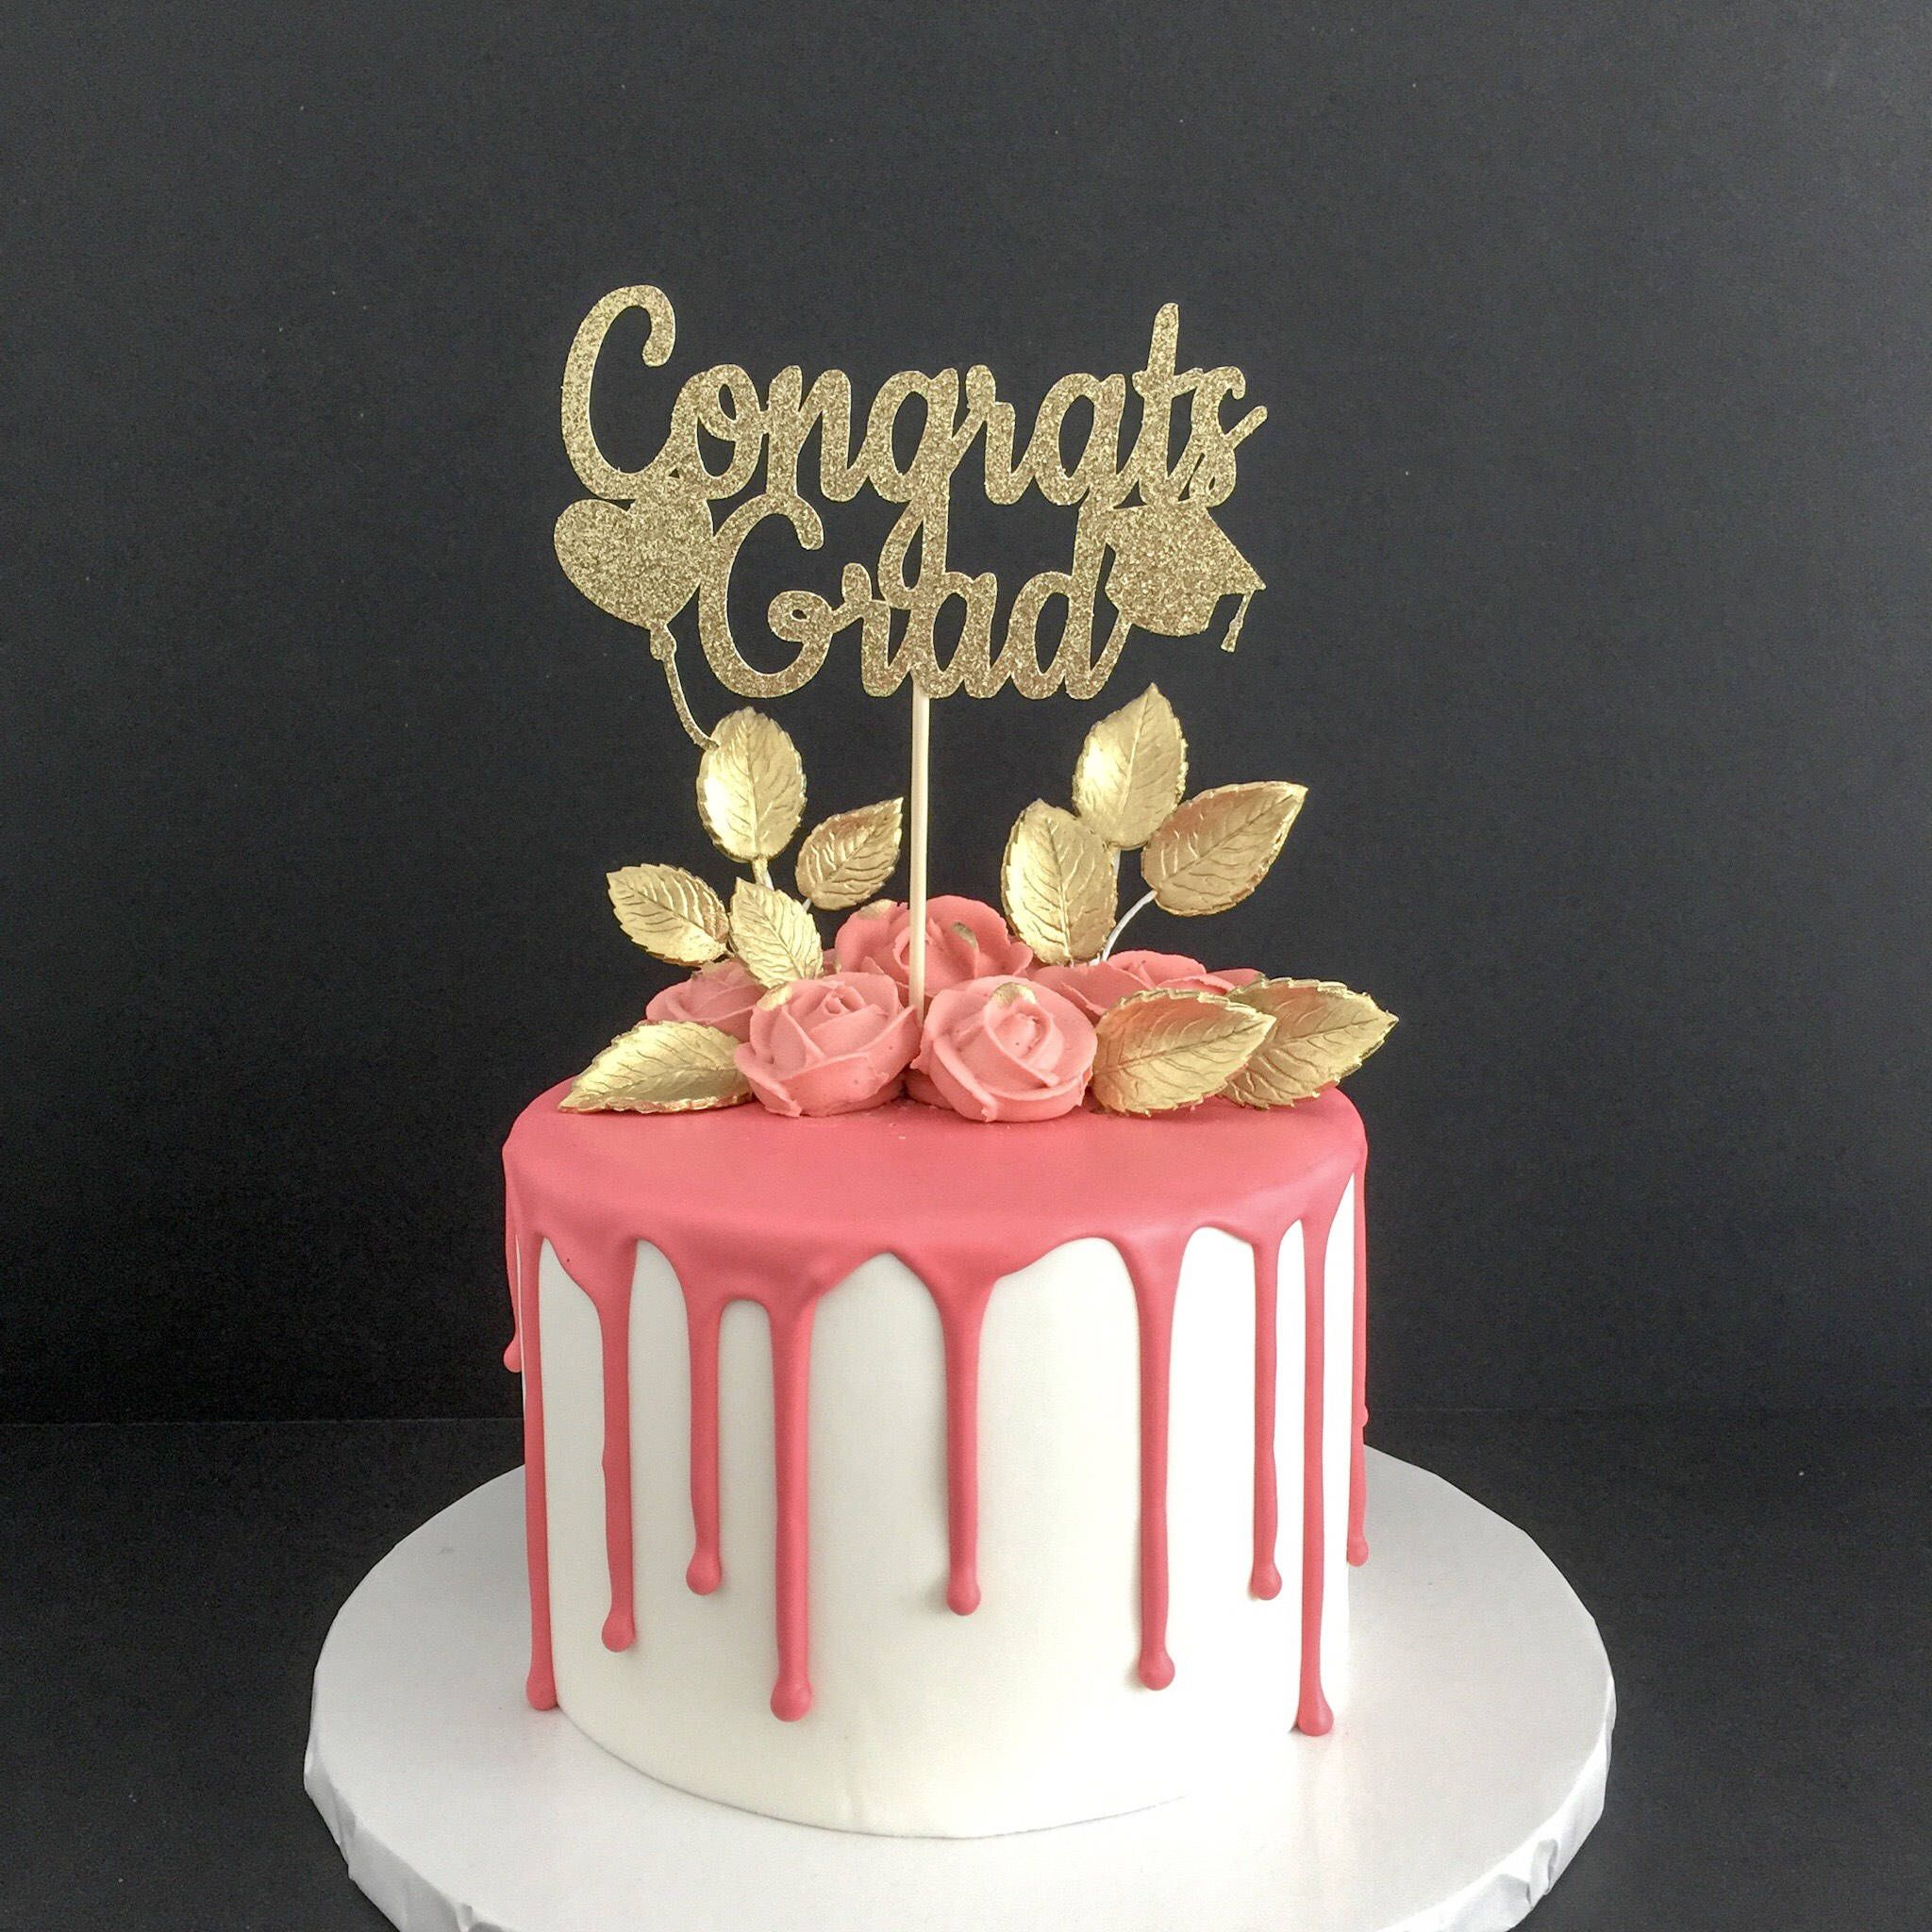 Any age th birthday cake topper never looked so good th